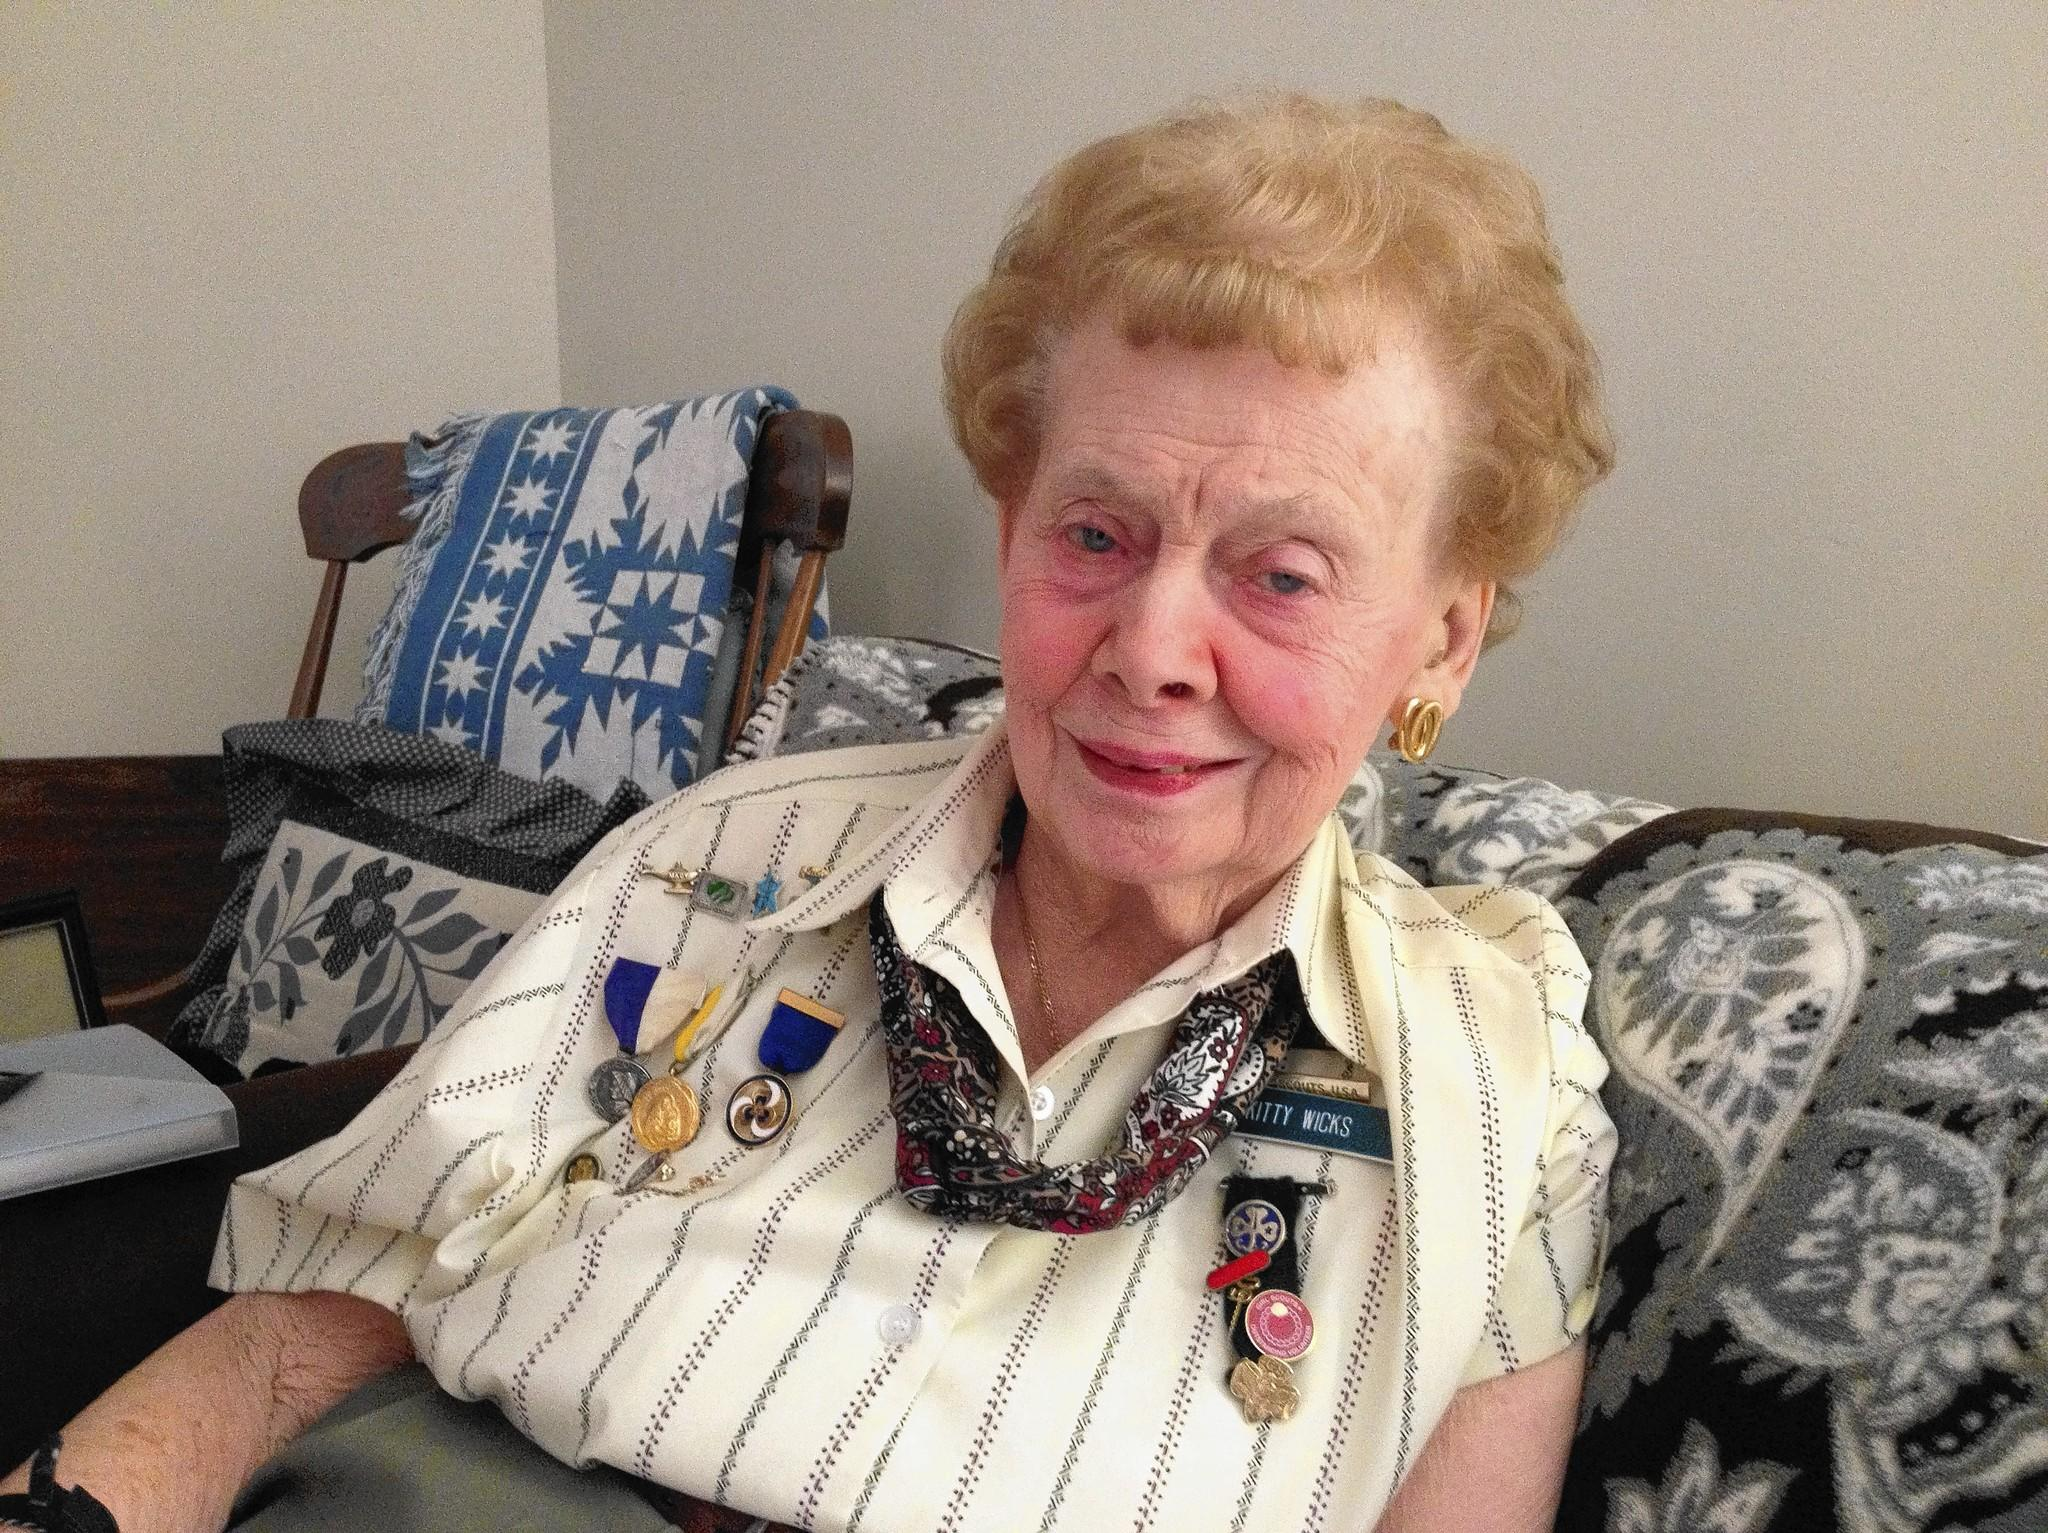 Kitty Wicks, 93, has been involved with the Girl Scouts in Manchester for 53 years. She still participates in activities throughout the year.